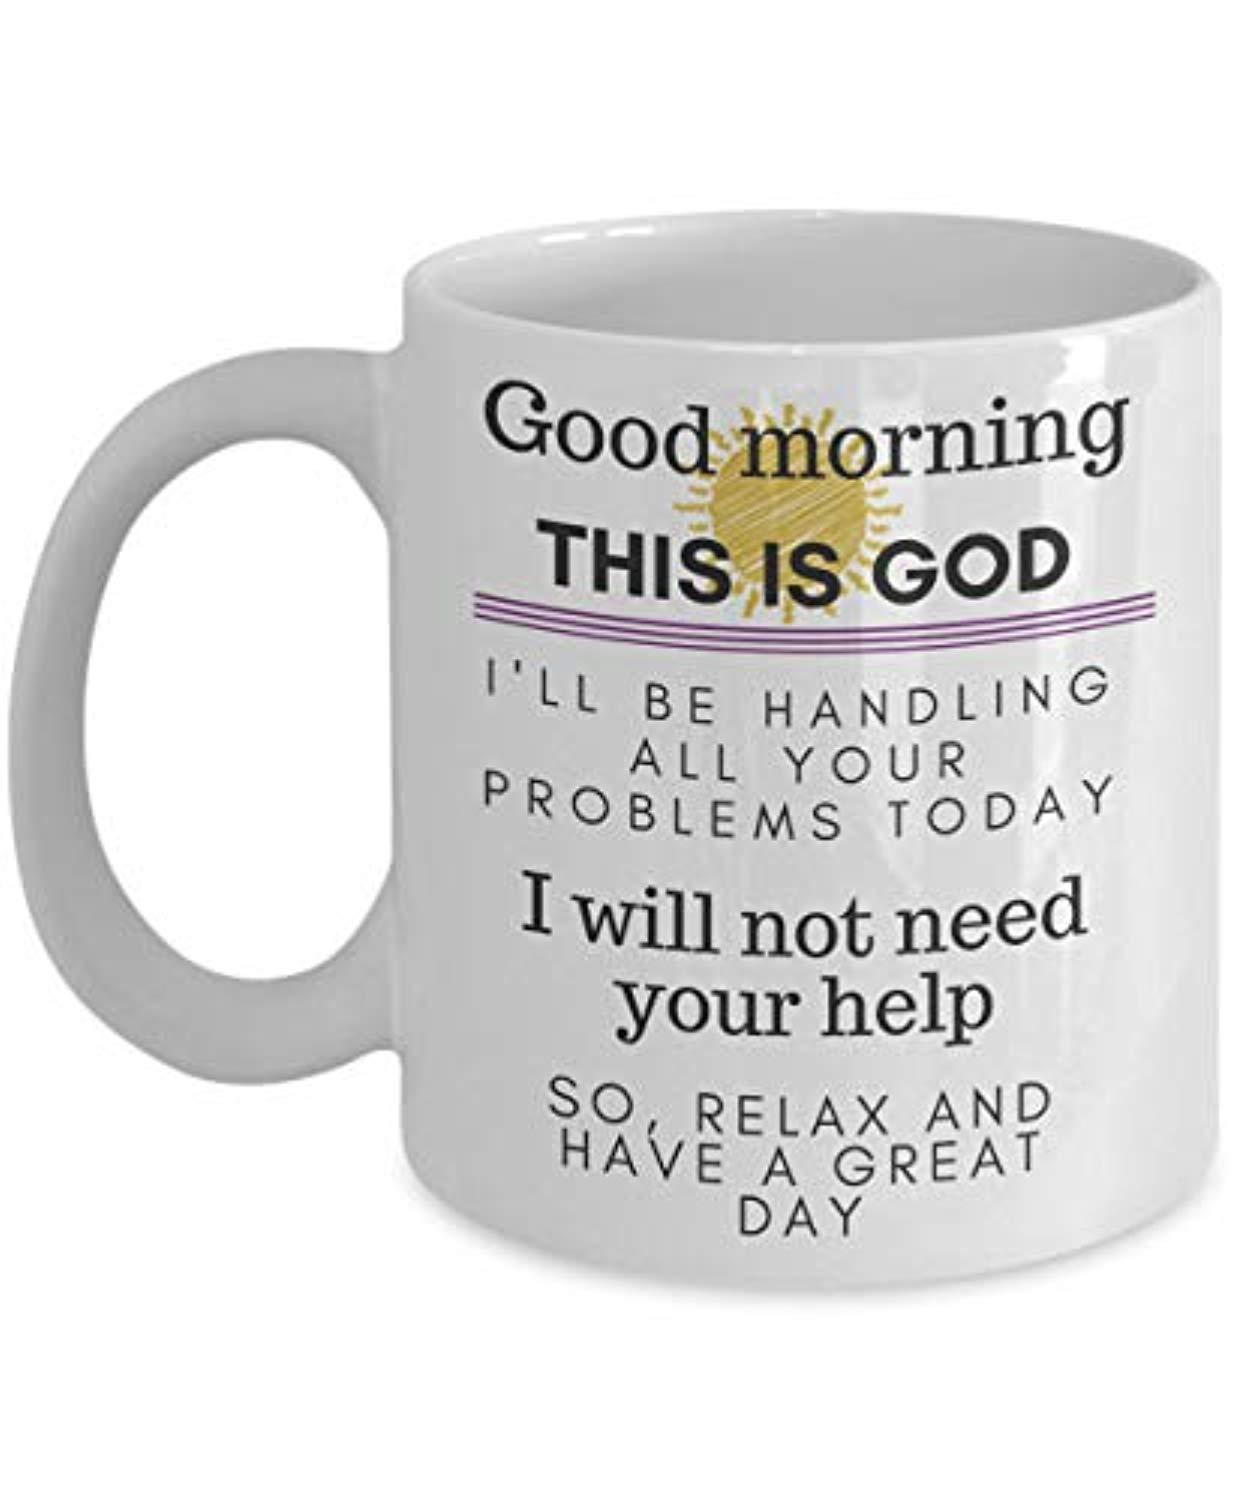 Good Morning This Is God I'll Be Handling All Your Problems Today